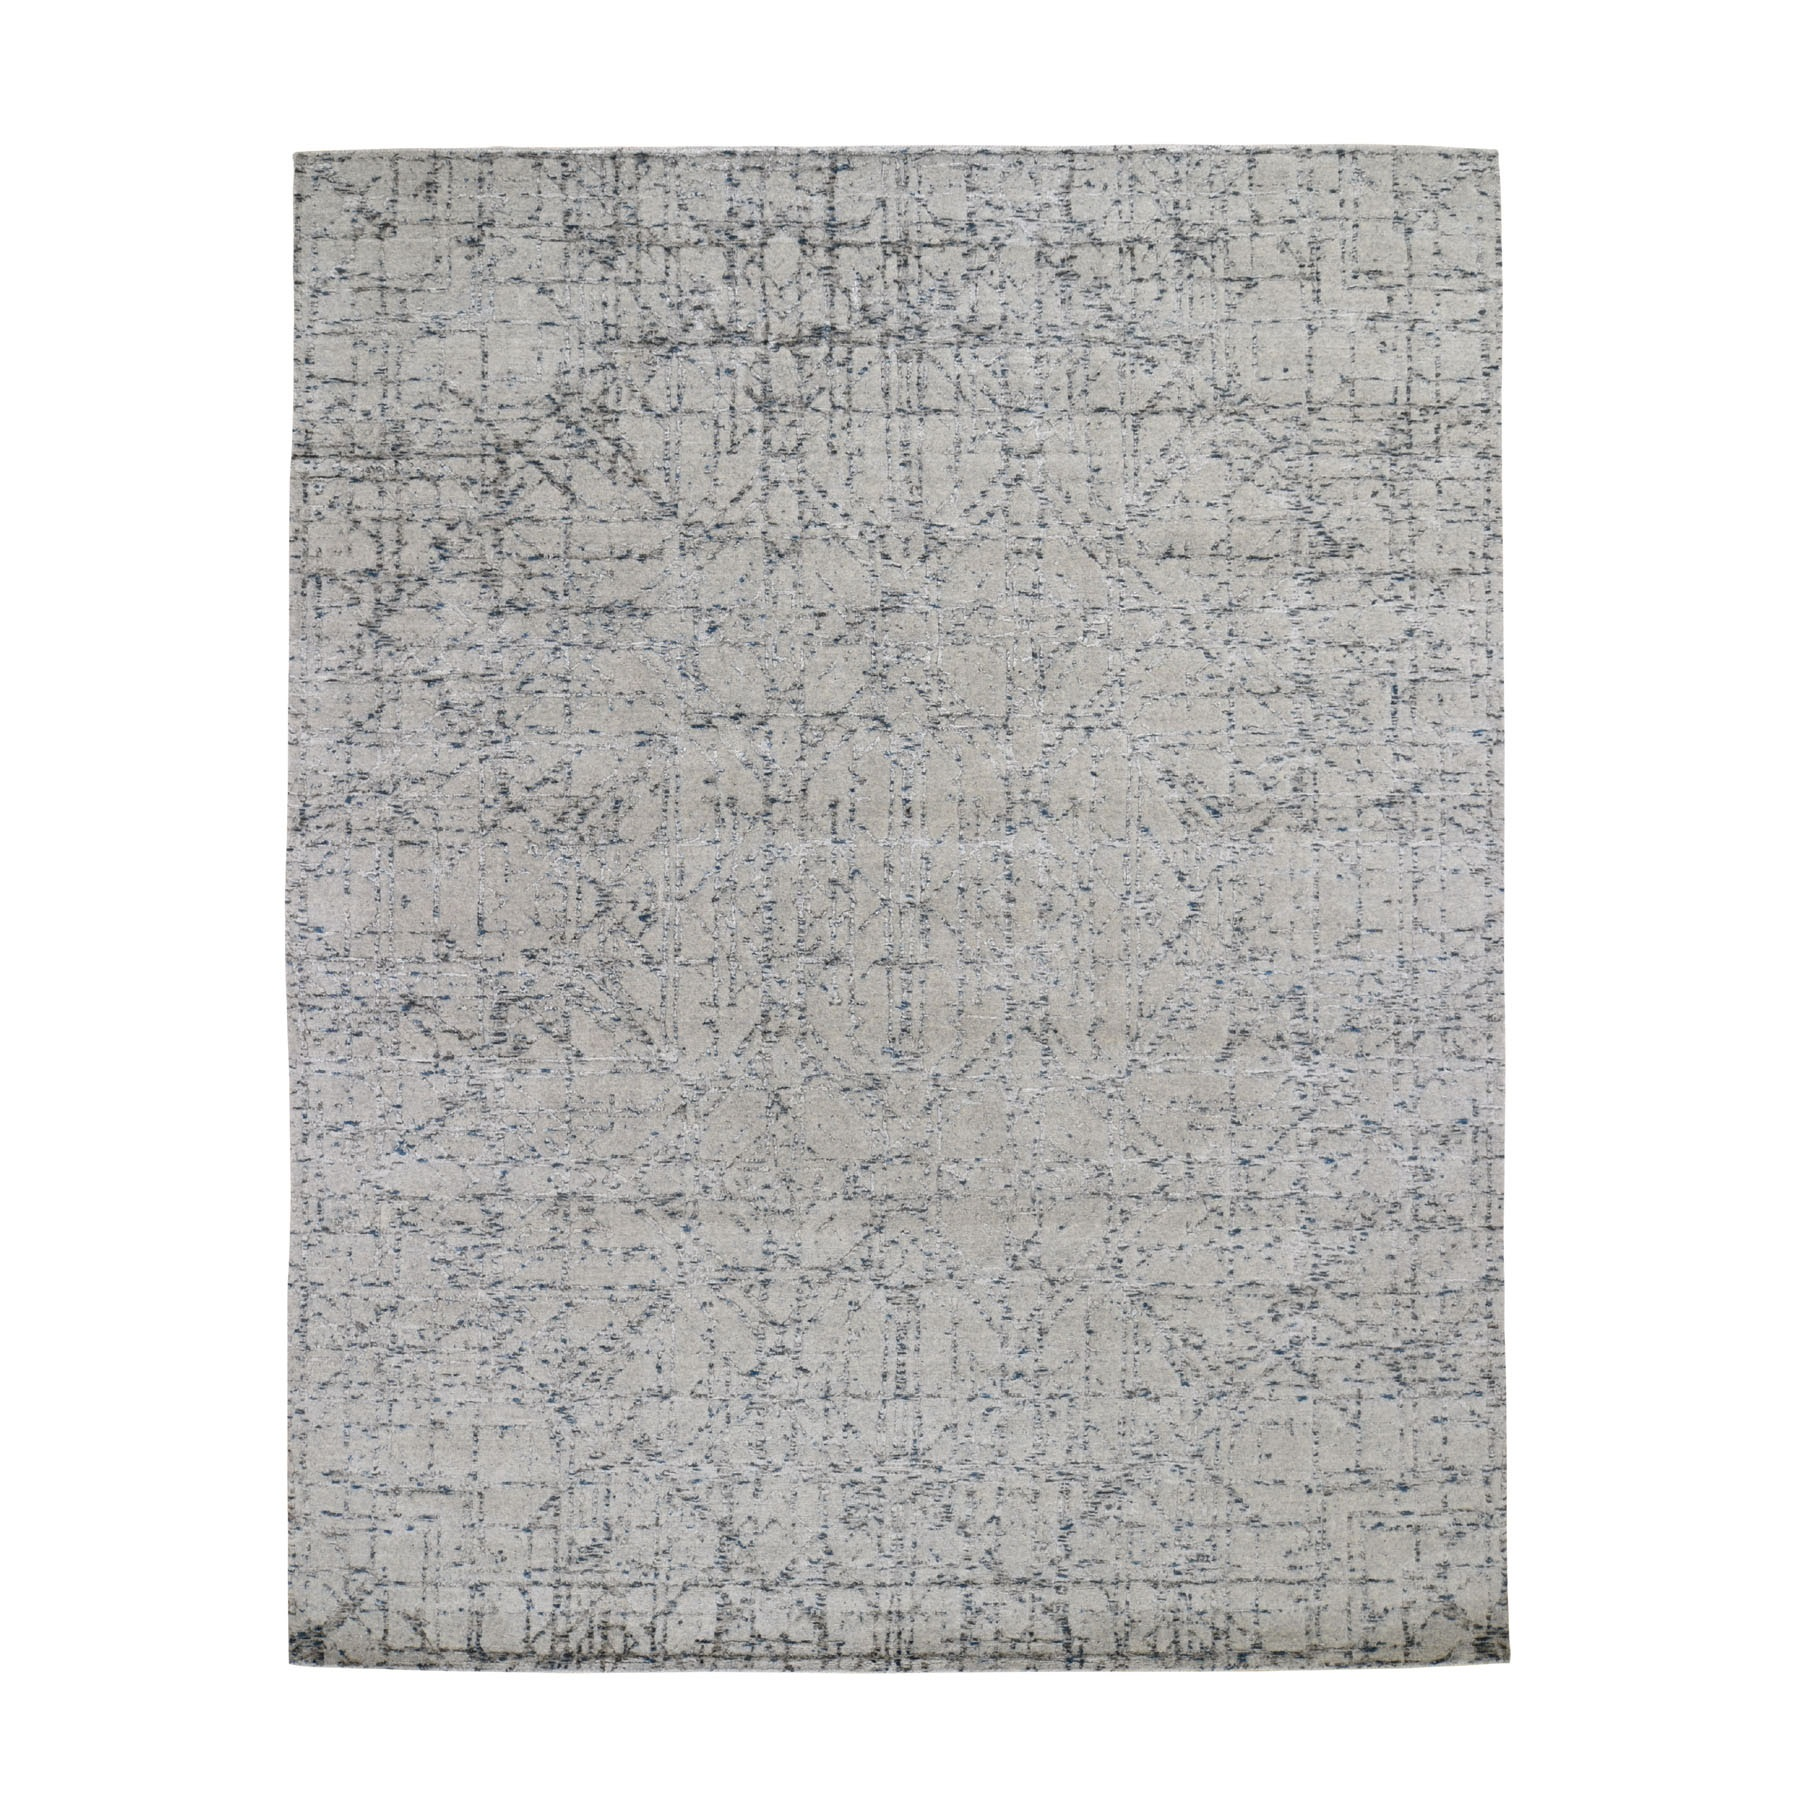 8'X10' Gray Fine Jacquard Hand-Loomed Modern Wool And Silk Oriental Rug moad7a9a